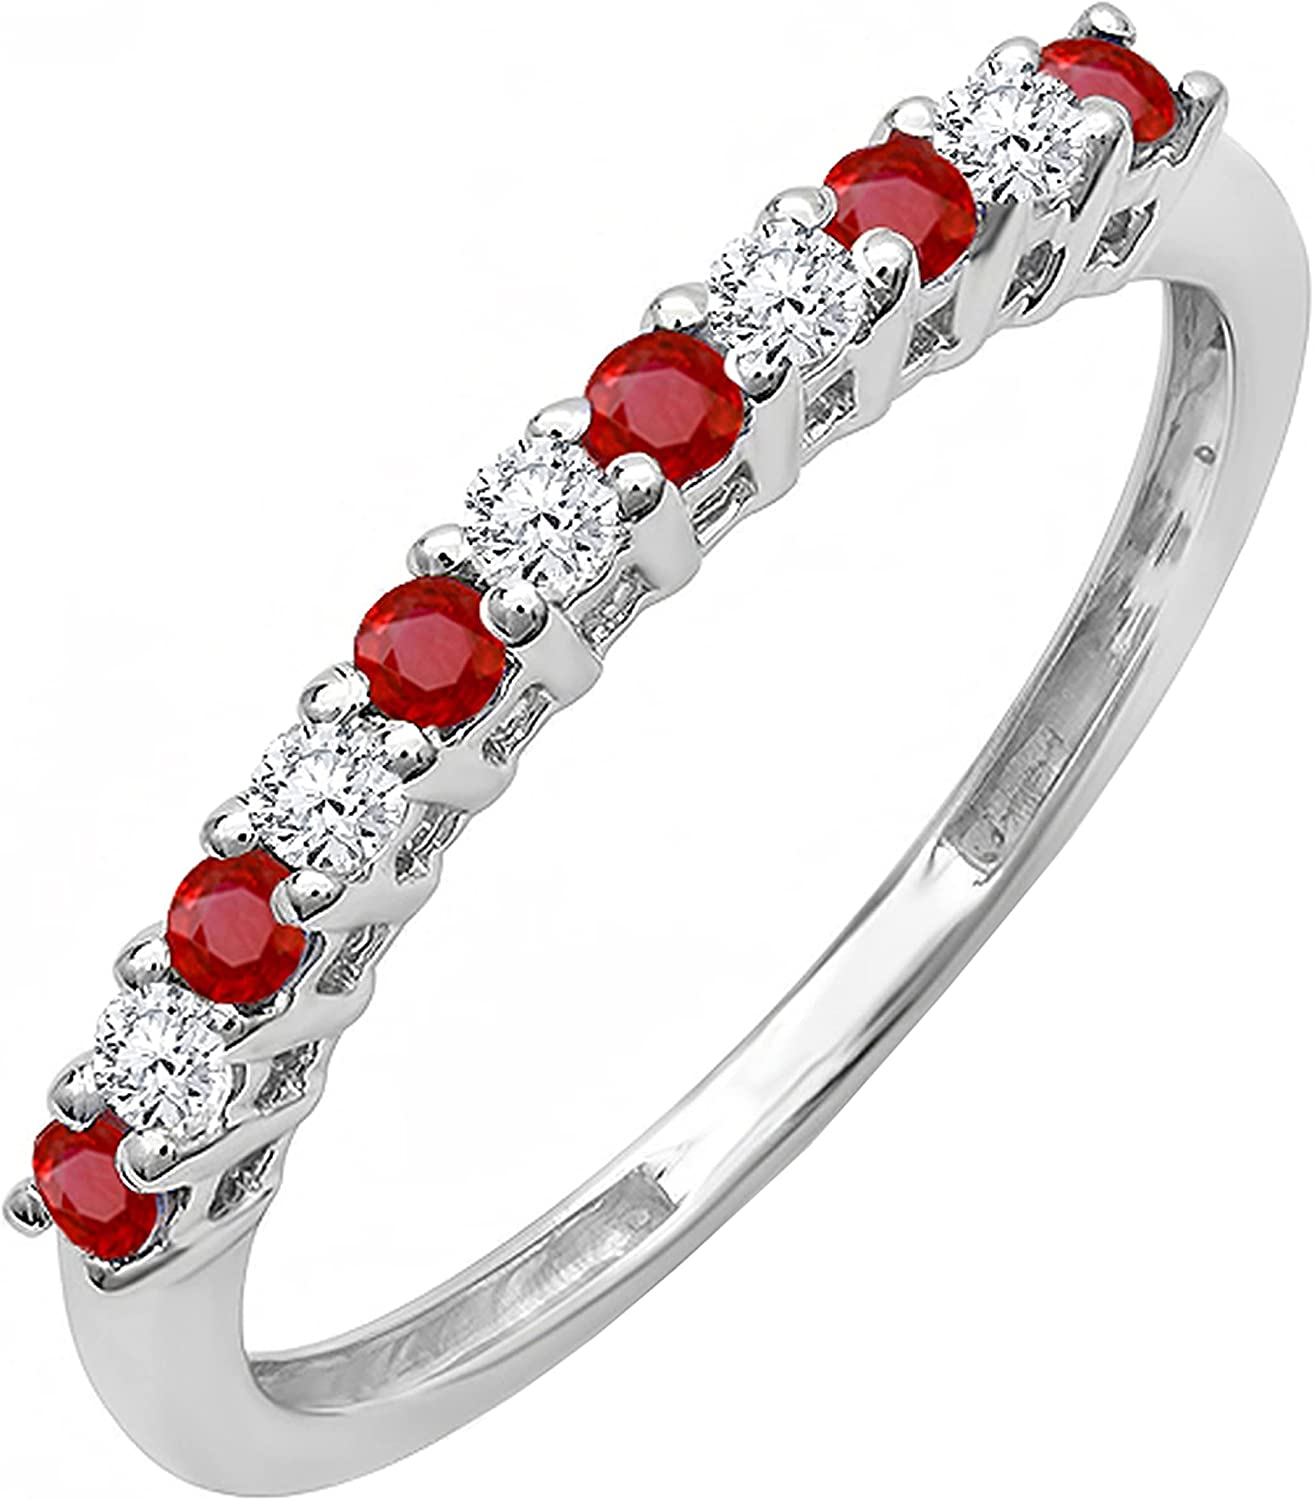 Dazzlingrock Collection Round Ruby and White Diamond Half Round Ladies Anniversary Vintage Style Stackable Wedding Band, Available in Metal 10K/14K/18K Gold